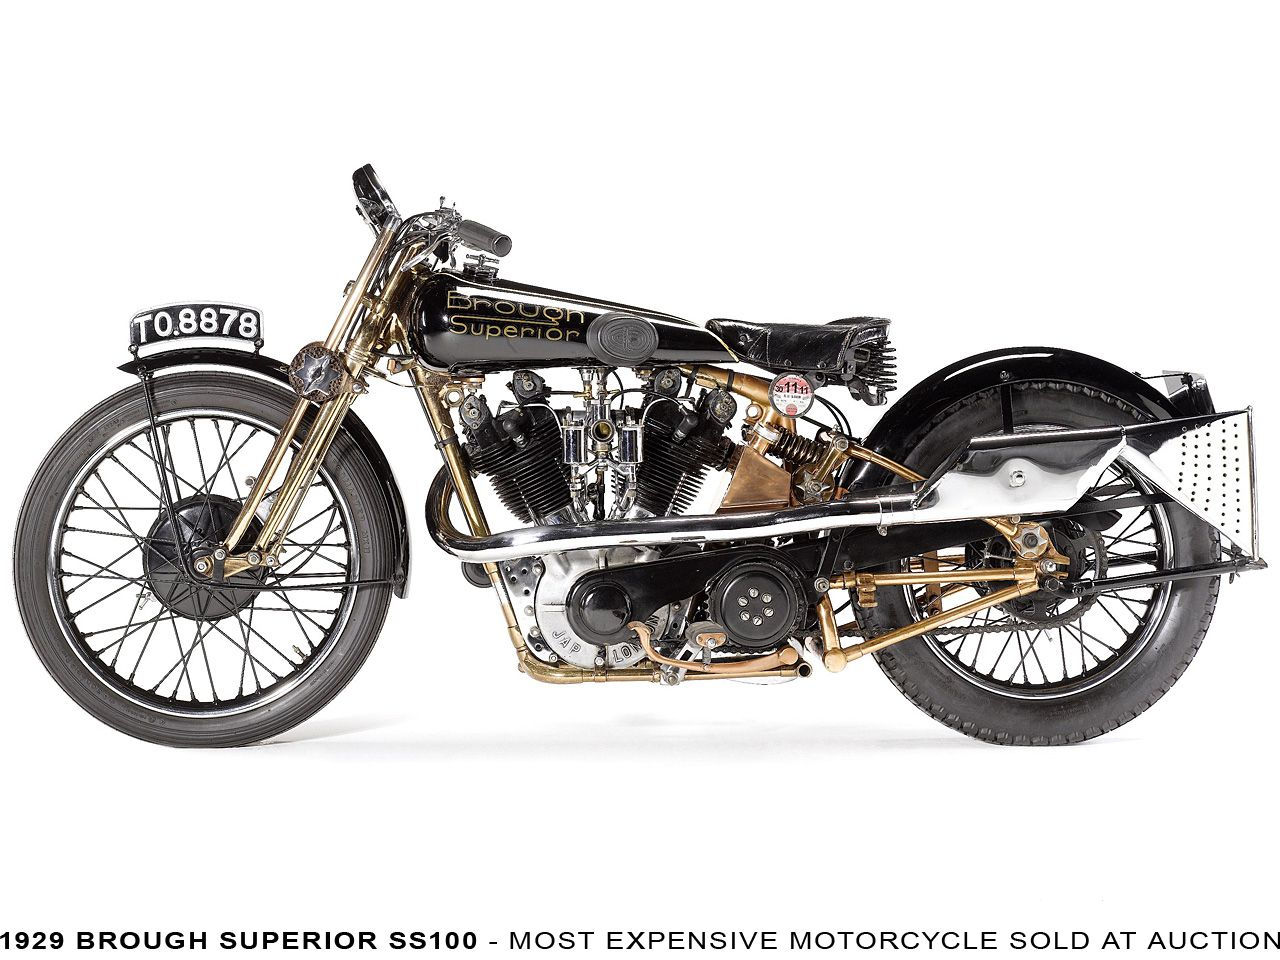 A Brough Superior SS Rolls Royce Of Motorcycles Is The - Expensive motorcycle ever sold